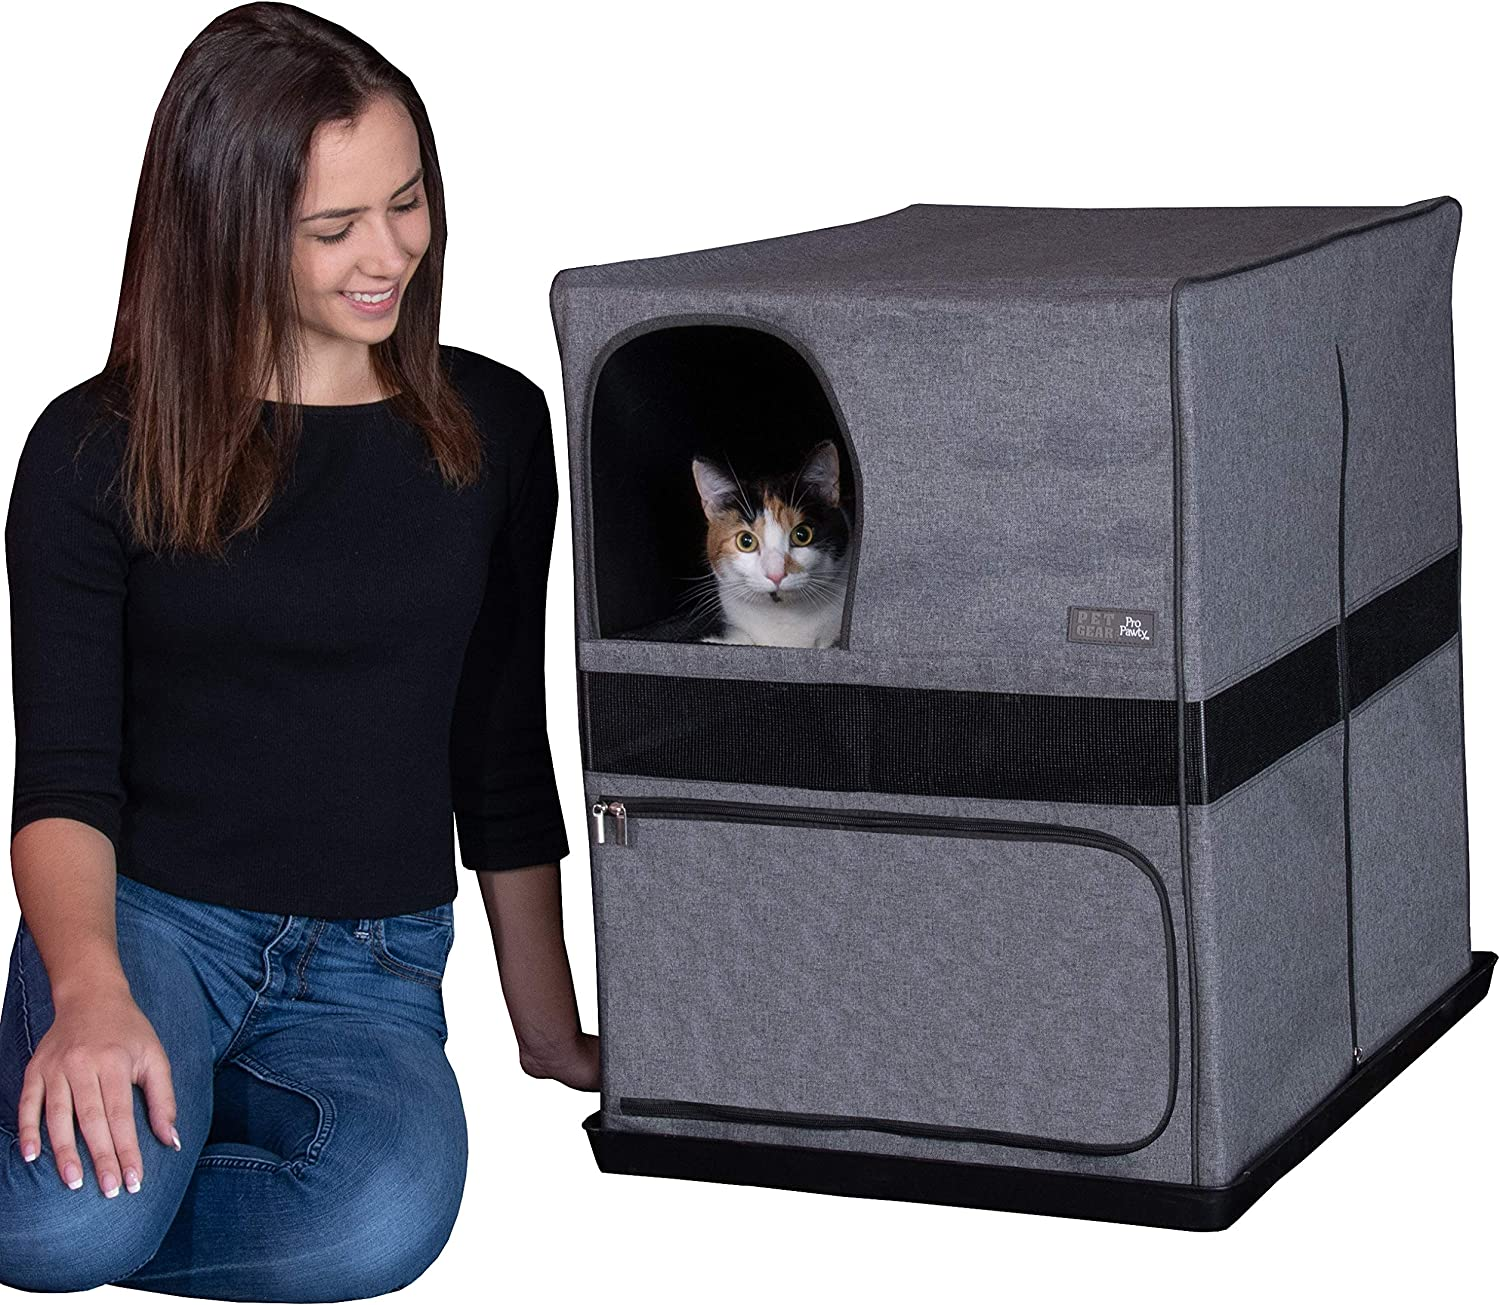 Pet Gear Pro Pawty for Cats, Put an end to Scattered Litter, Box not Included